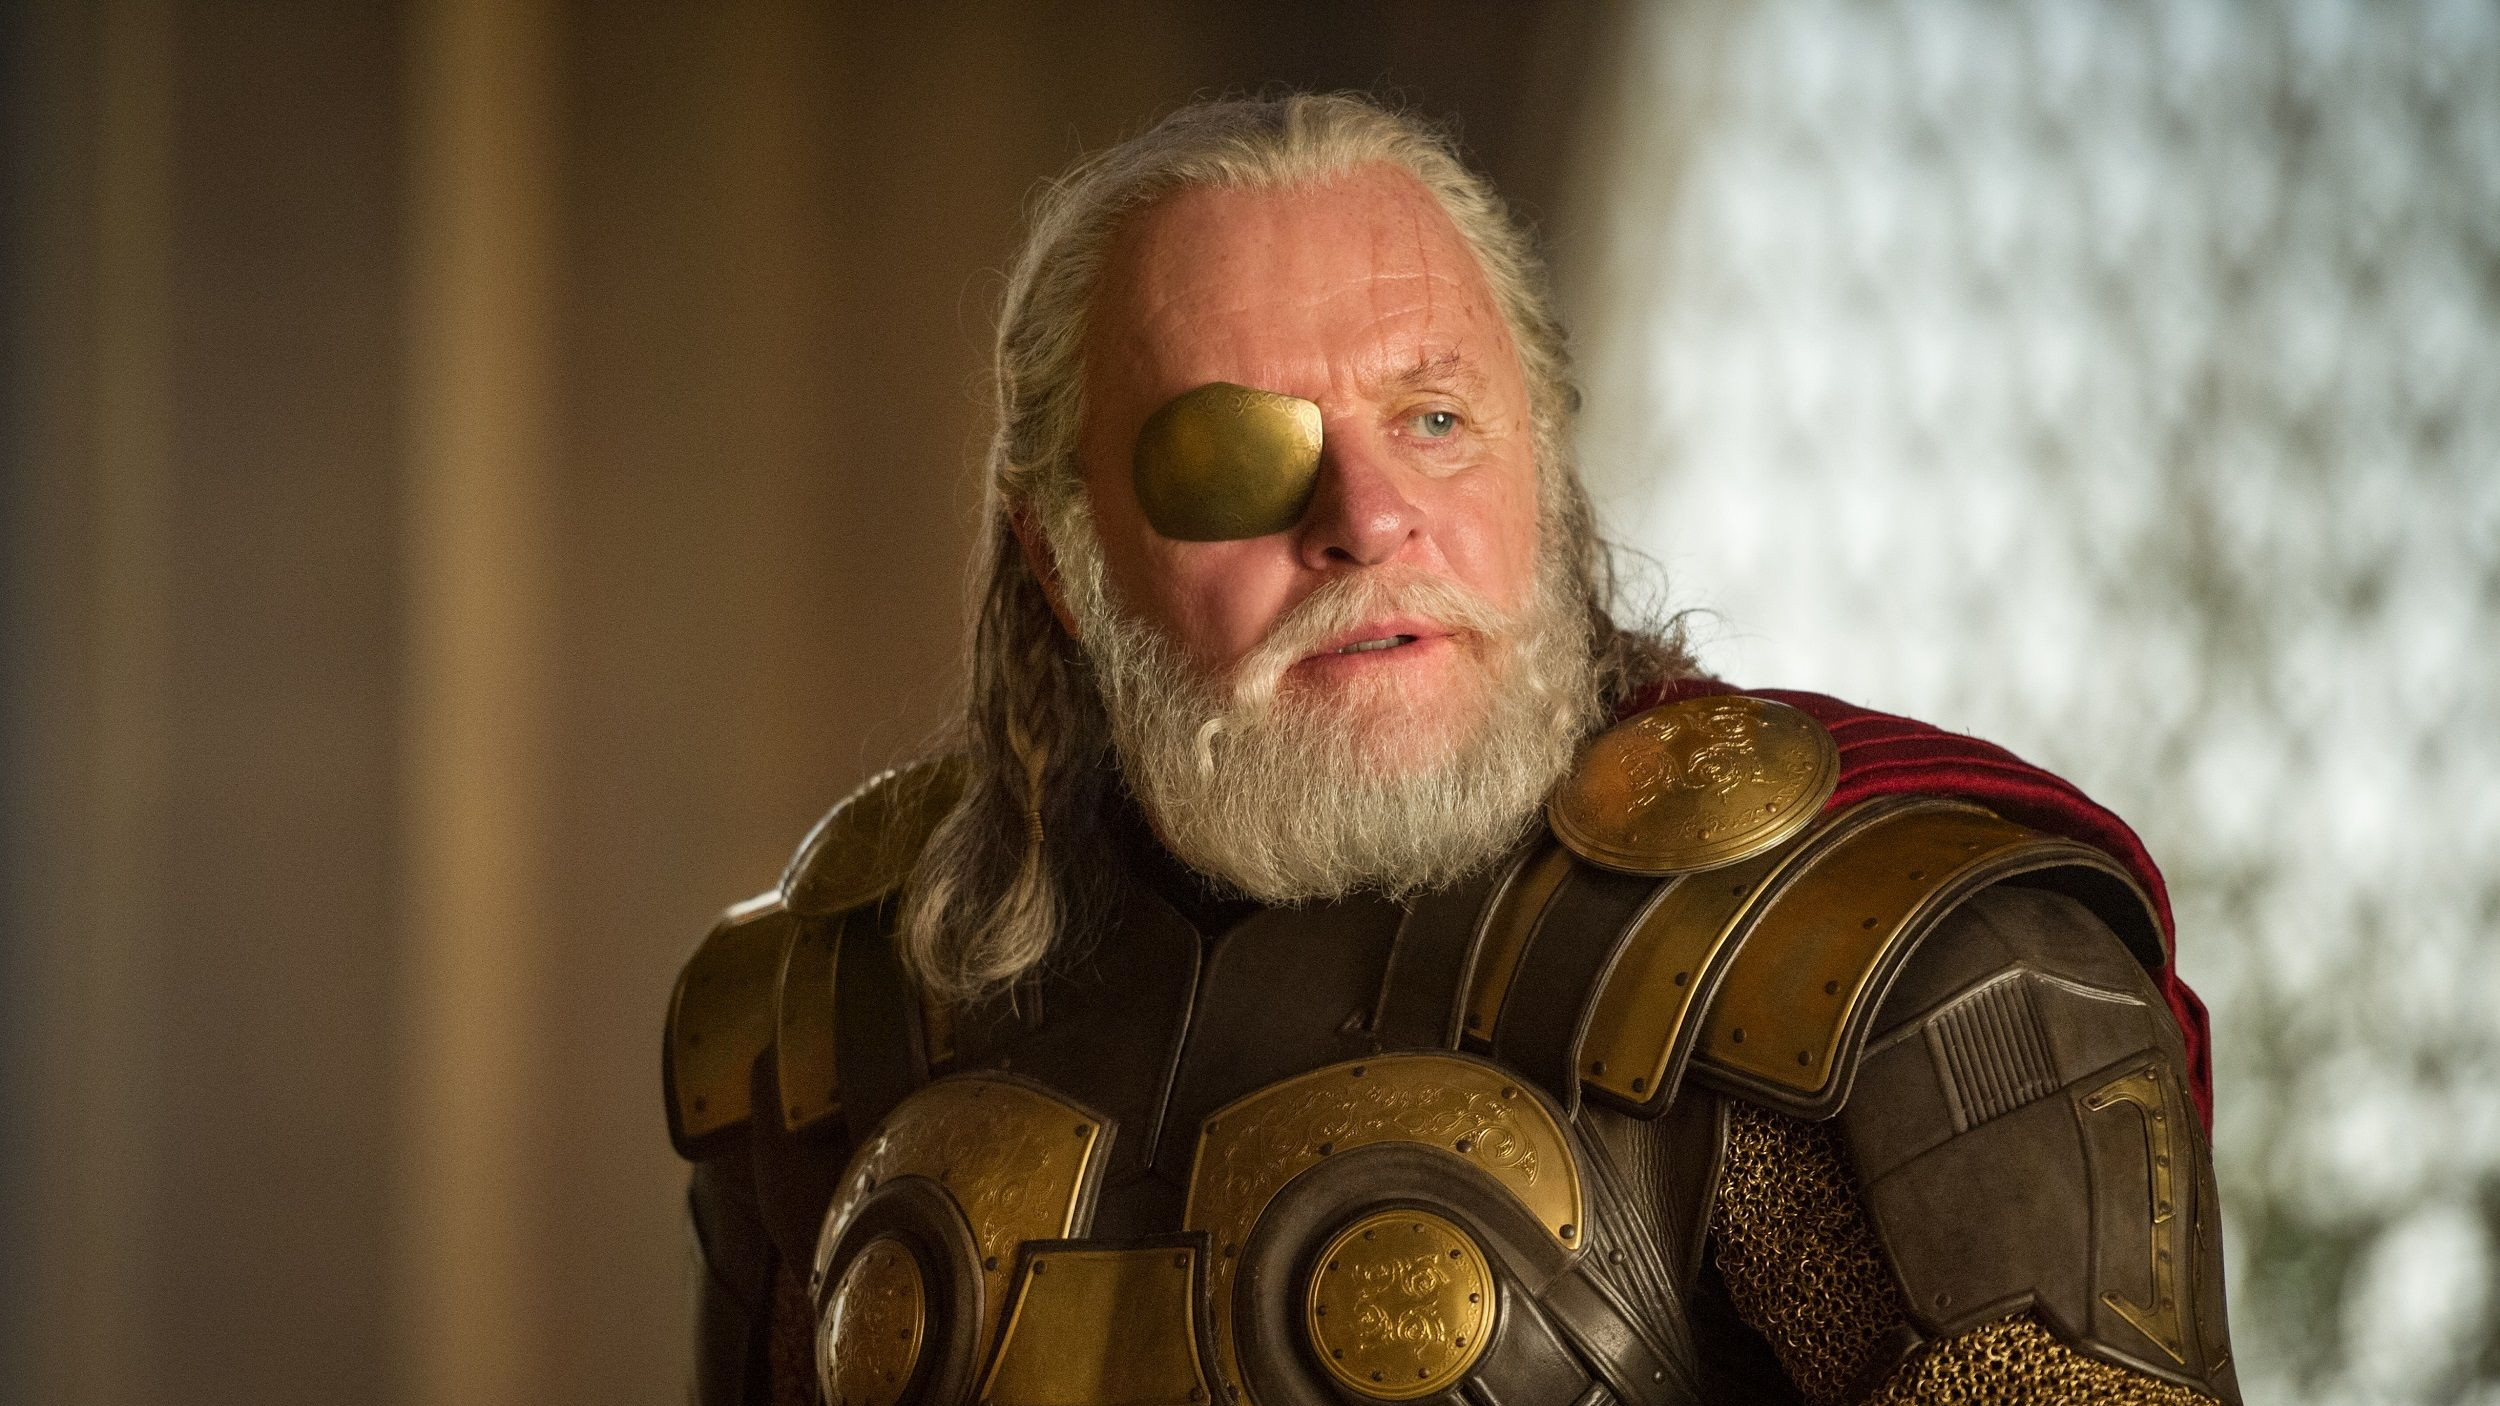 Anthony Hopkins as Odin in 2013 blockbuster 'Thor: The Dark World'. (Credit: Marvel)